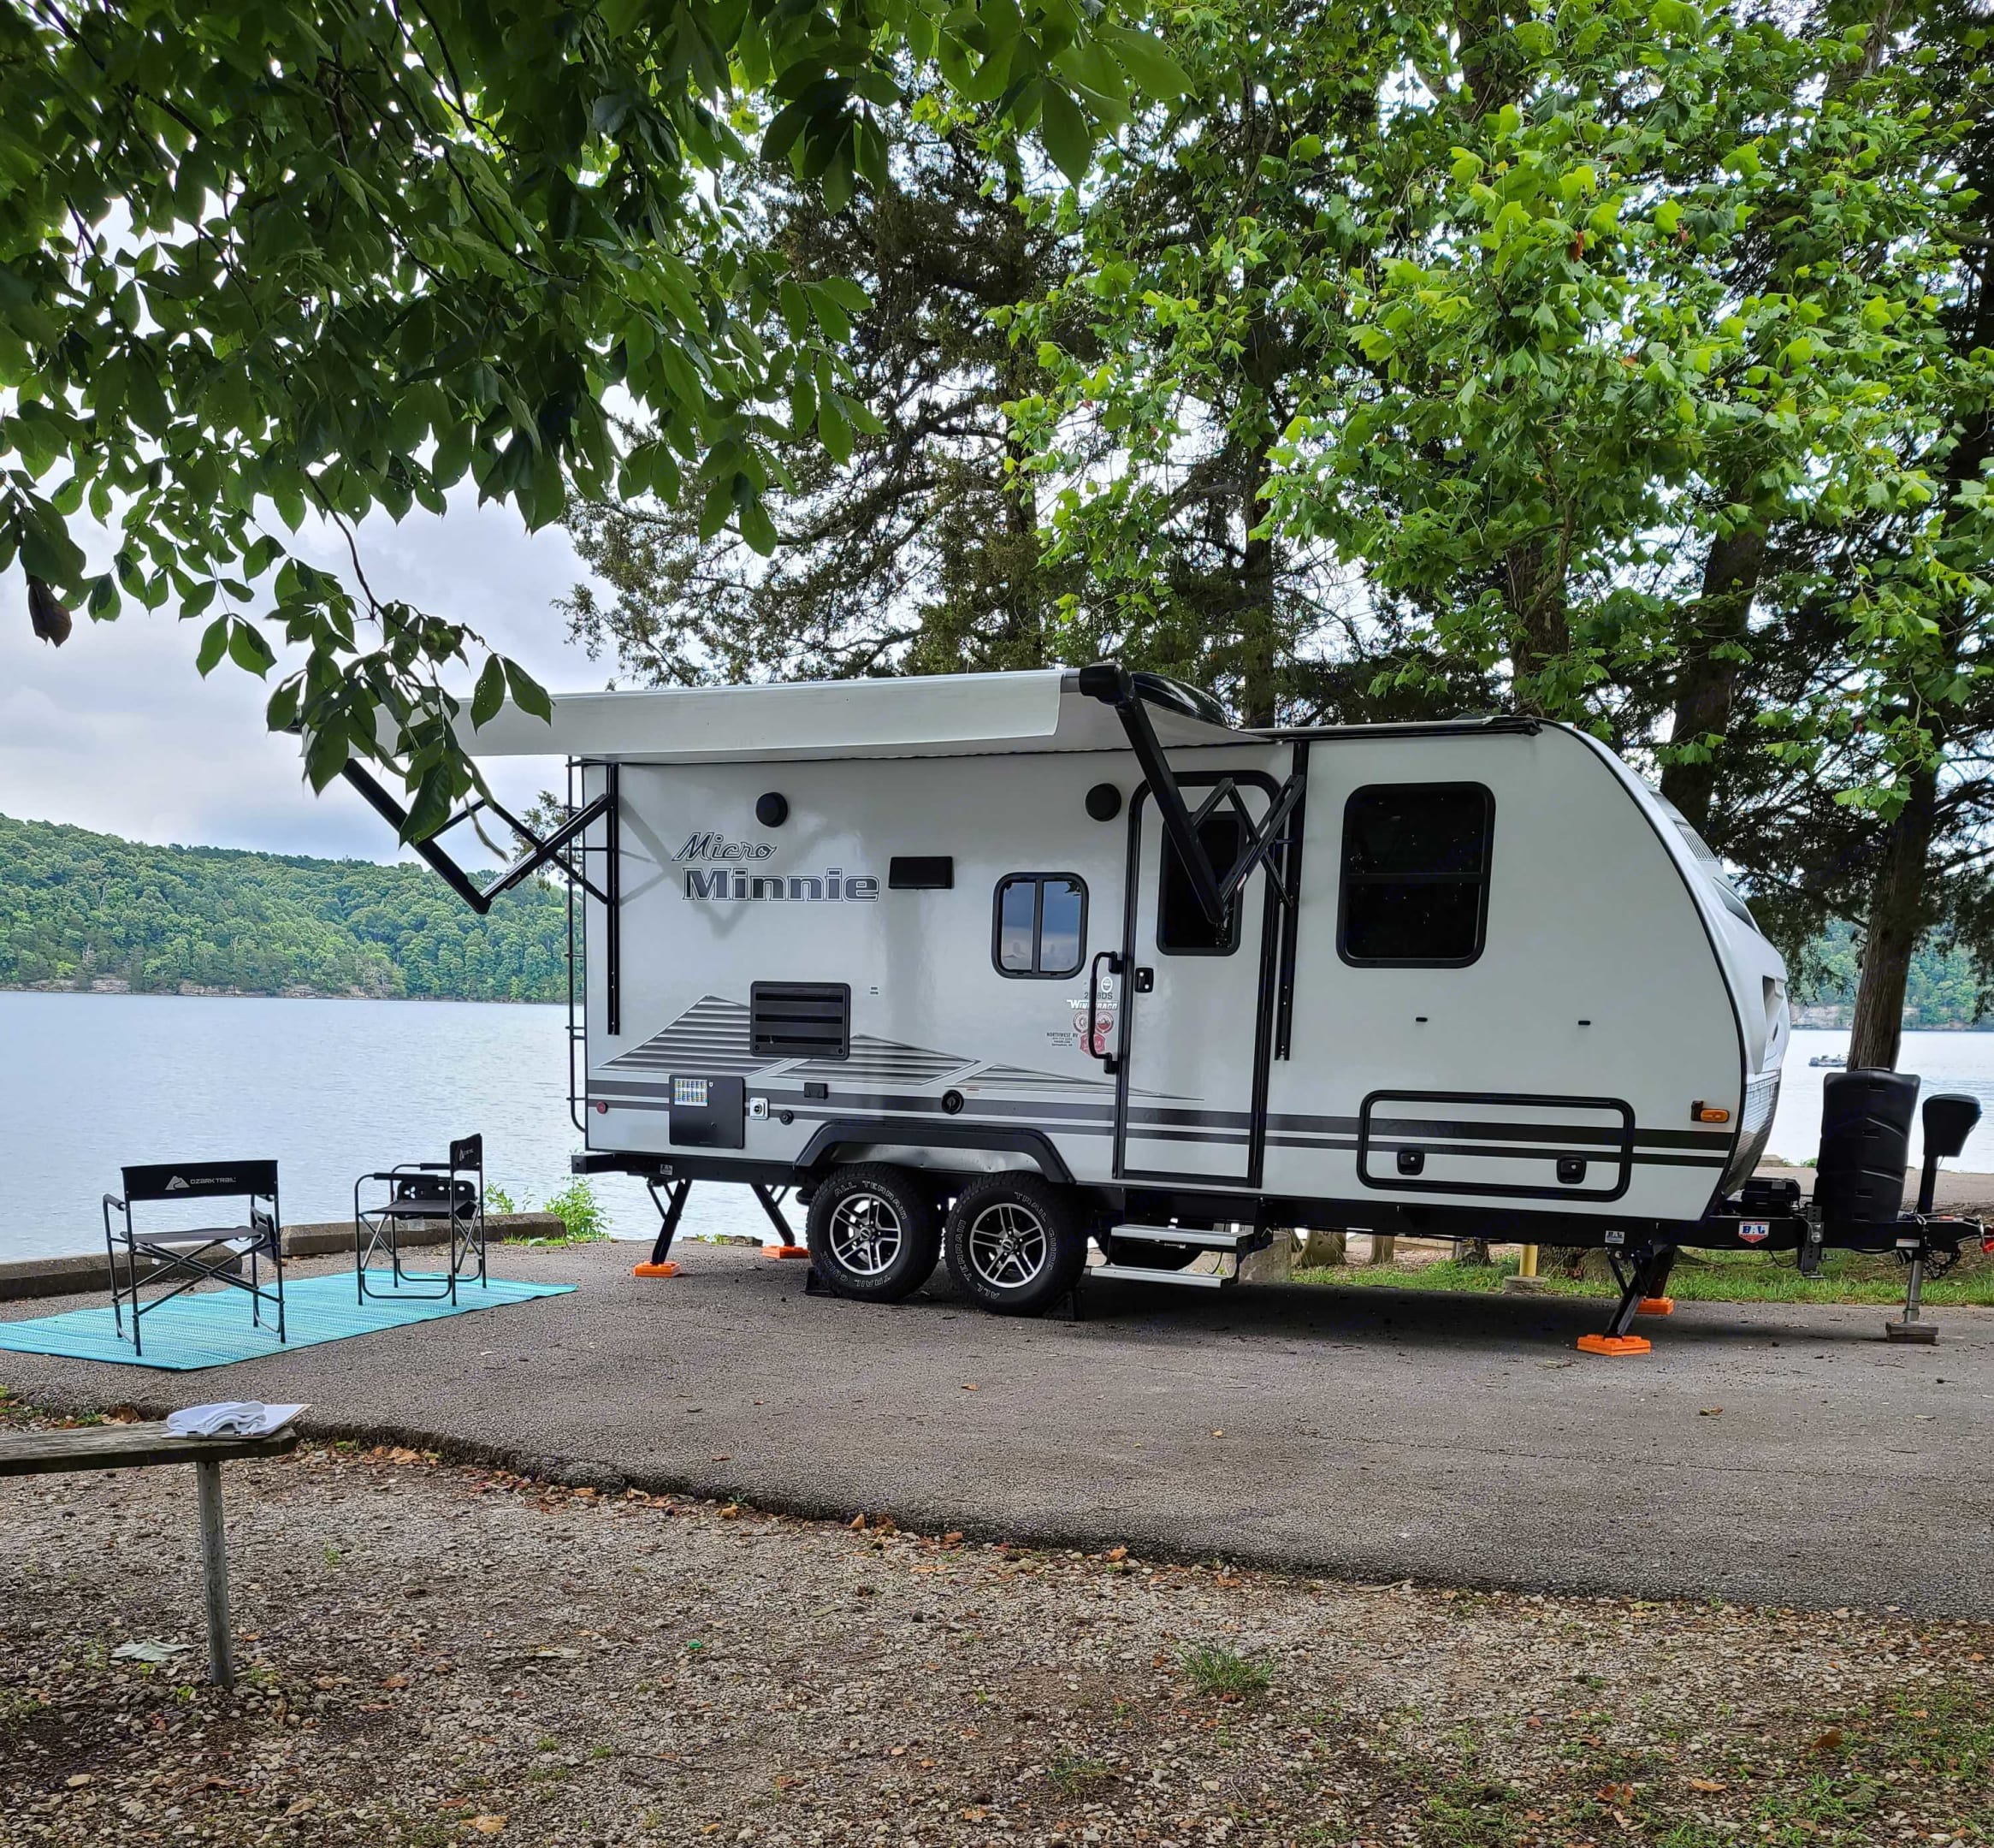 Here's a picture of a recent delivery/setup we did at Horseshoe Bend. Winnebago Micro Minnie 2021